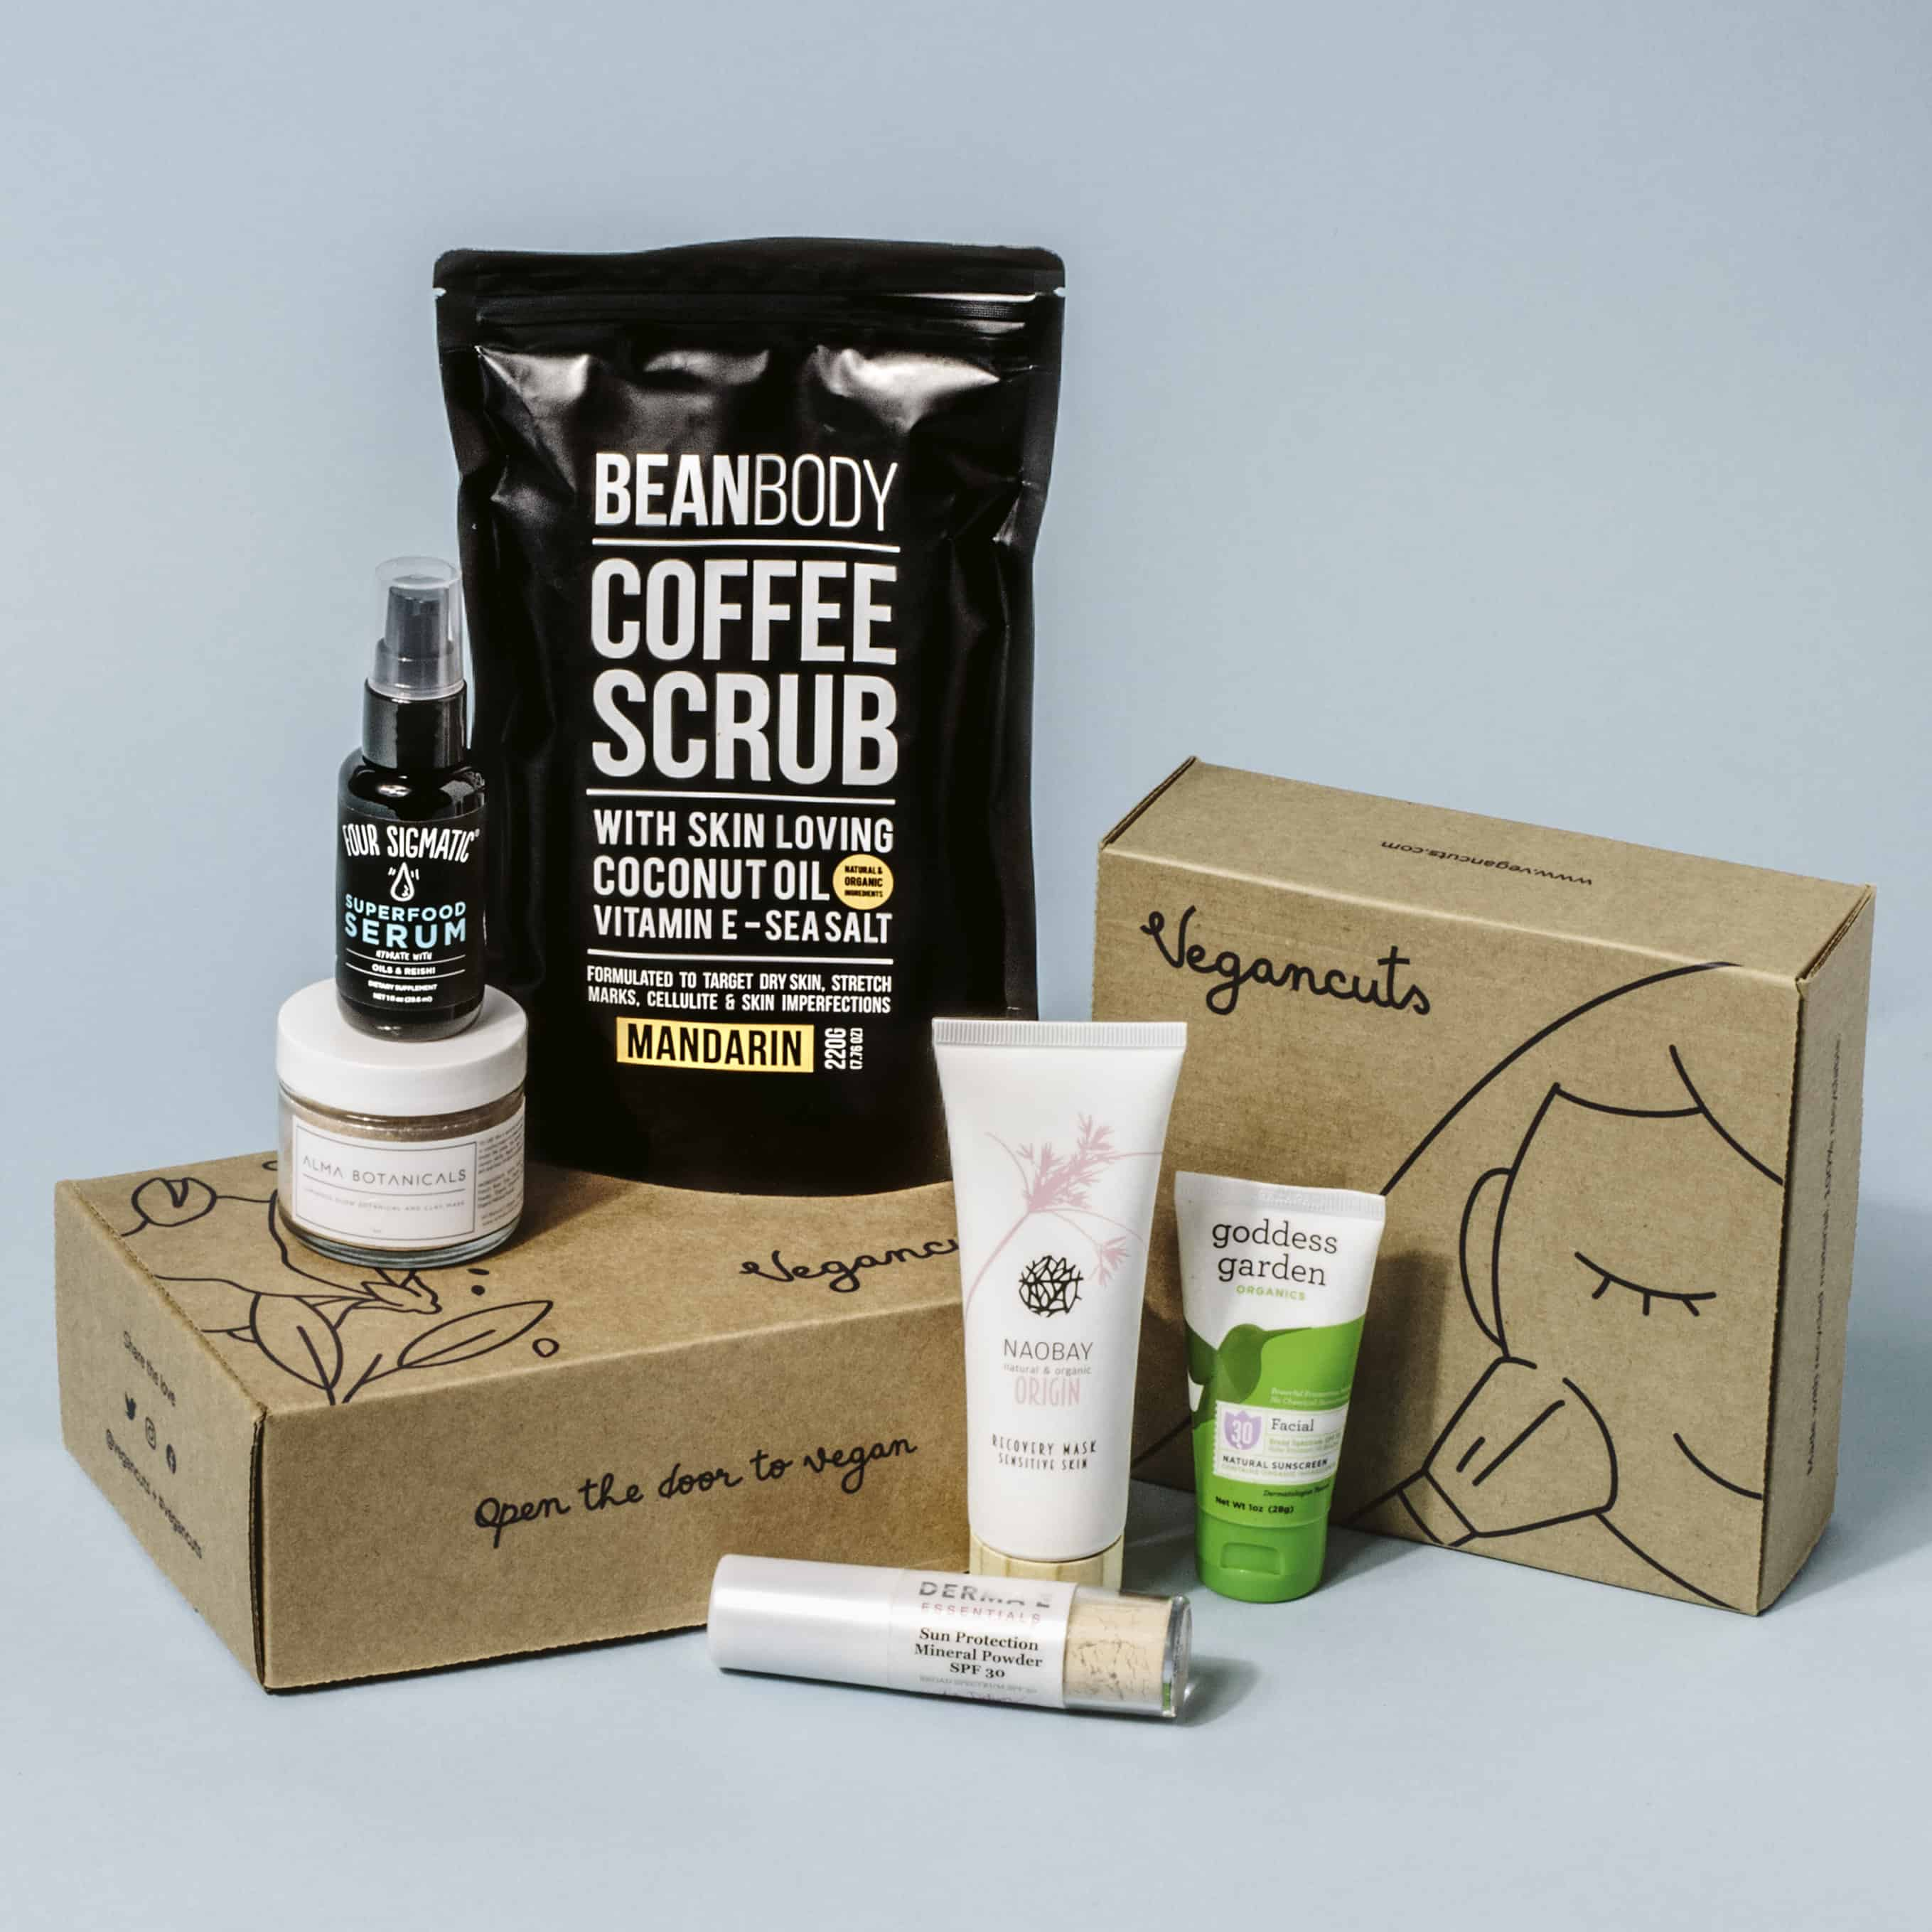 Vegancuts Beauty Box